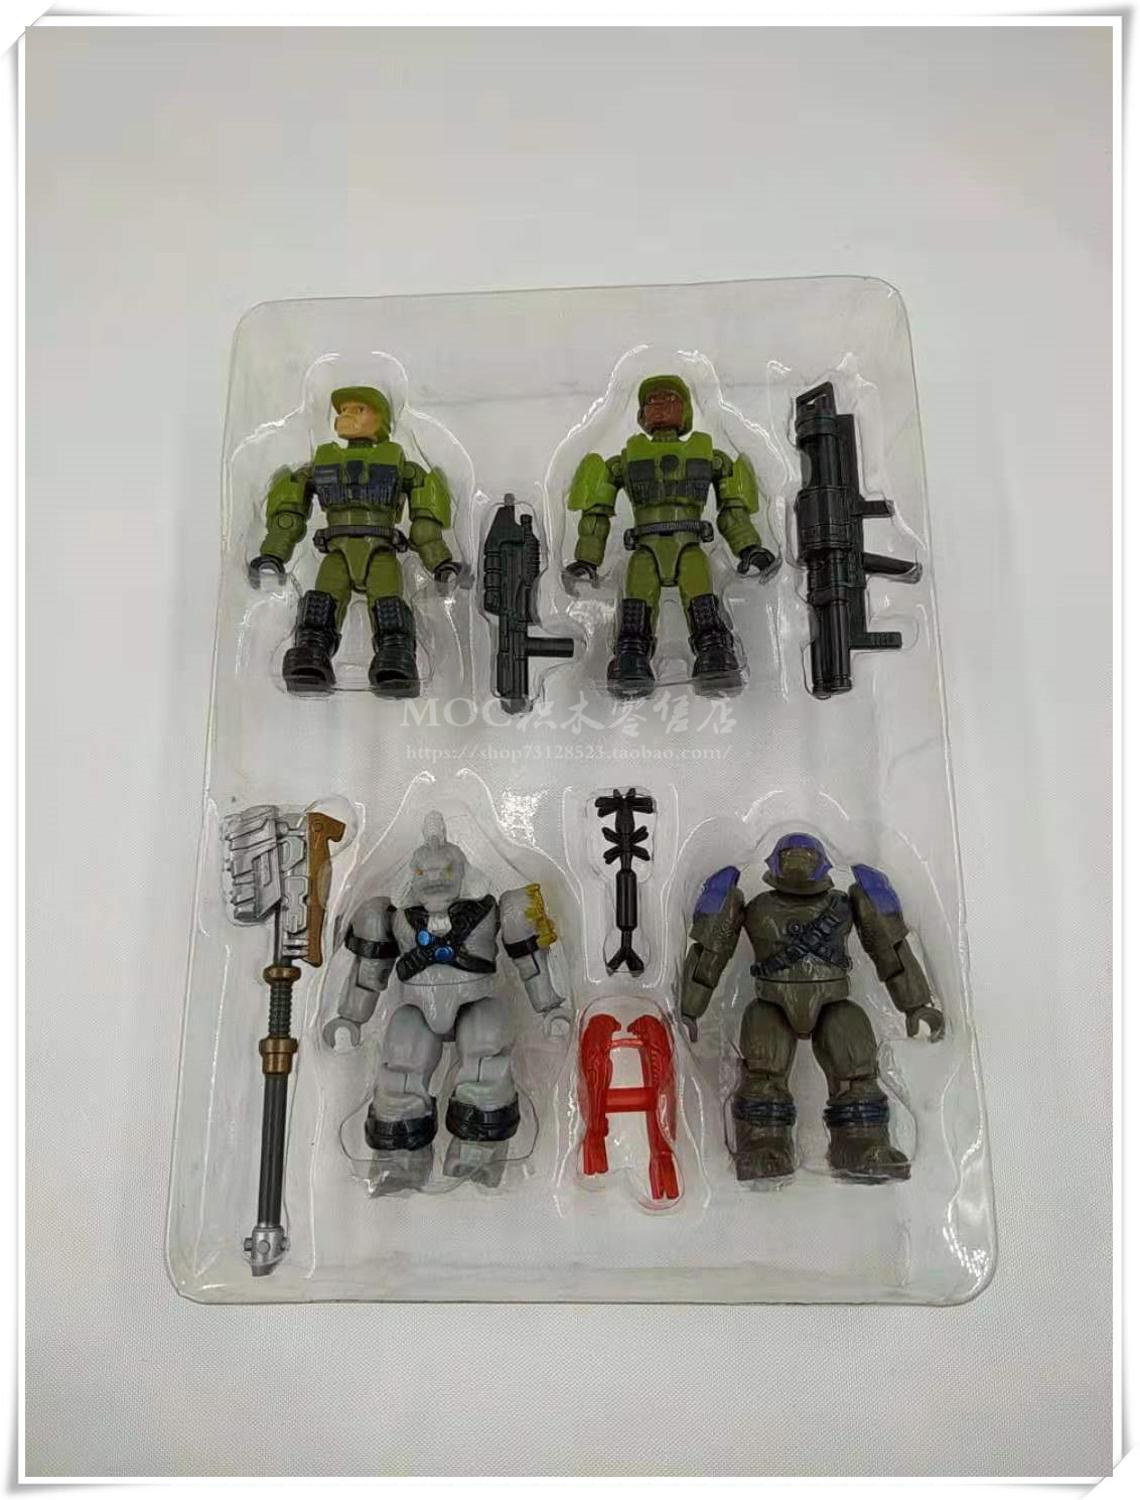 HALO MechWarrior Anime Action Figure Perfect Quality PVC Figurine Soldier Limbs Can Moving Toys For Children